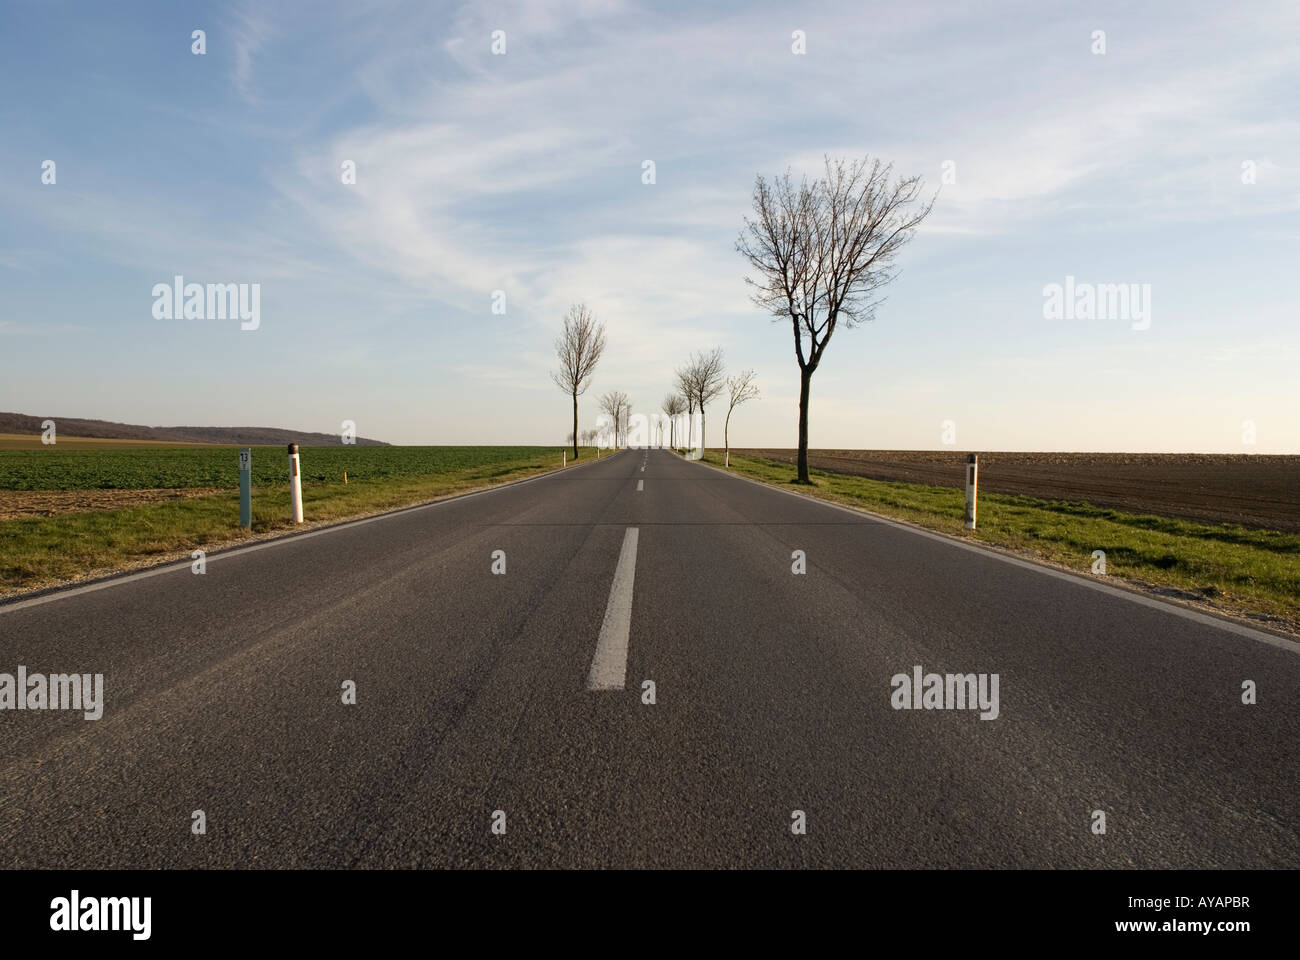 wideangle of road on the countryside in lower Austria, beginning of spring, trees without leaves, blue sky with - Stock Image